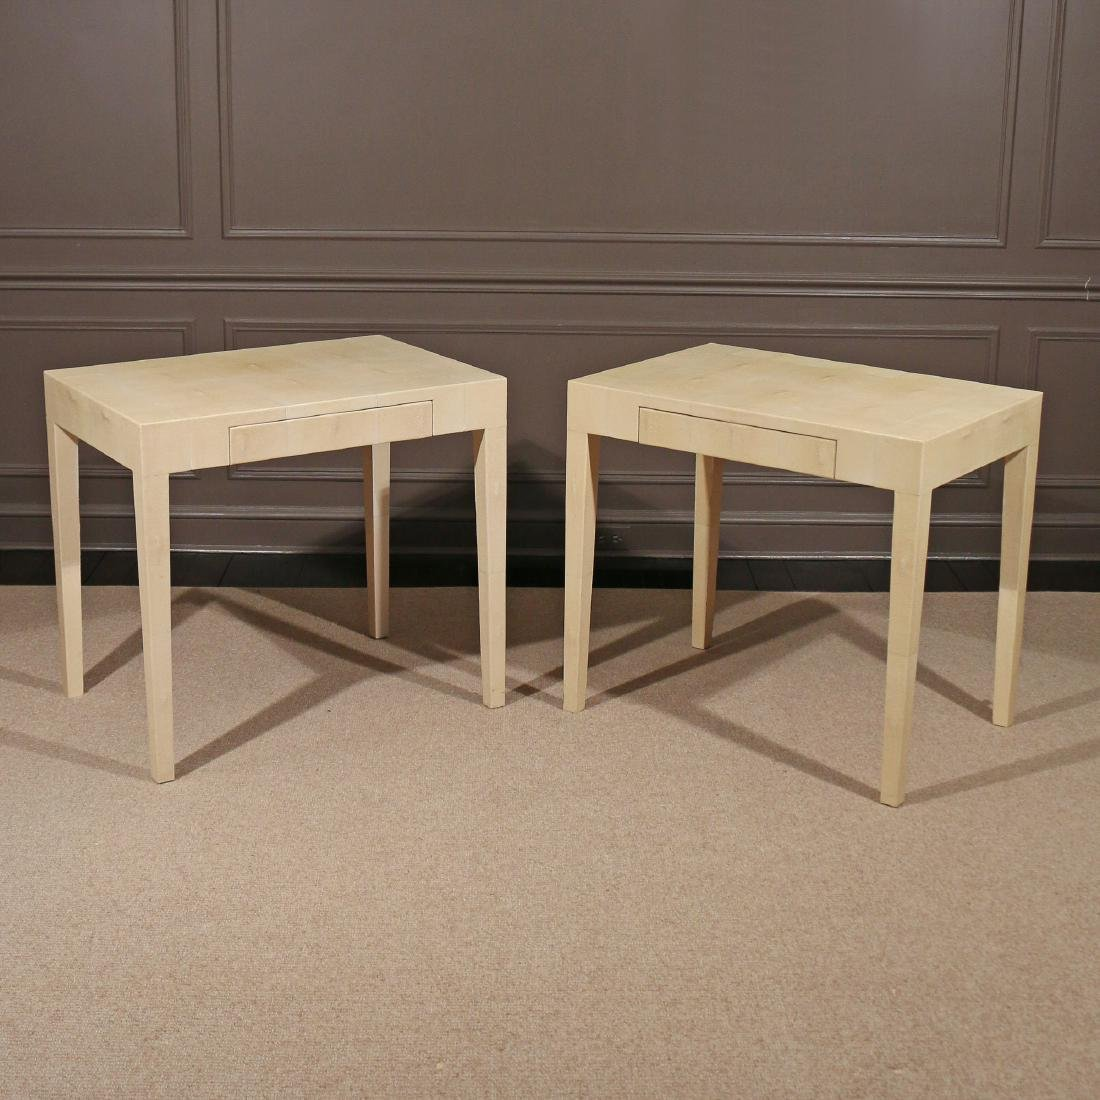 PAIR OF CONTEMPORARY GOATSKIN END TABLES